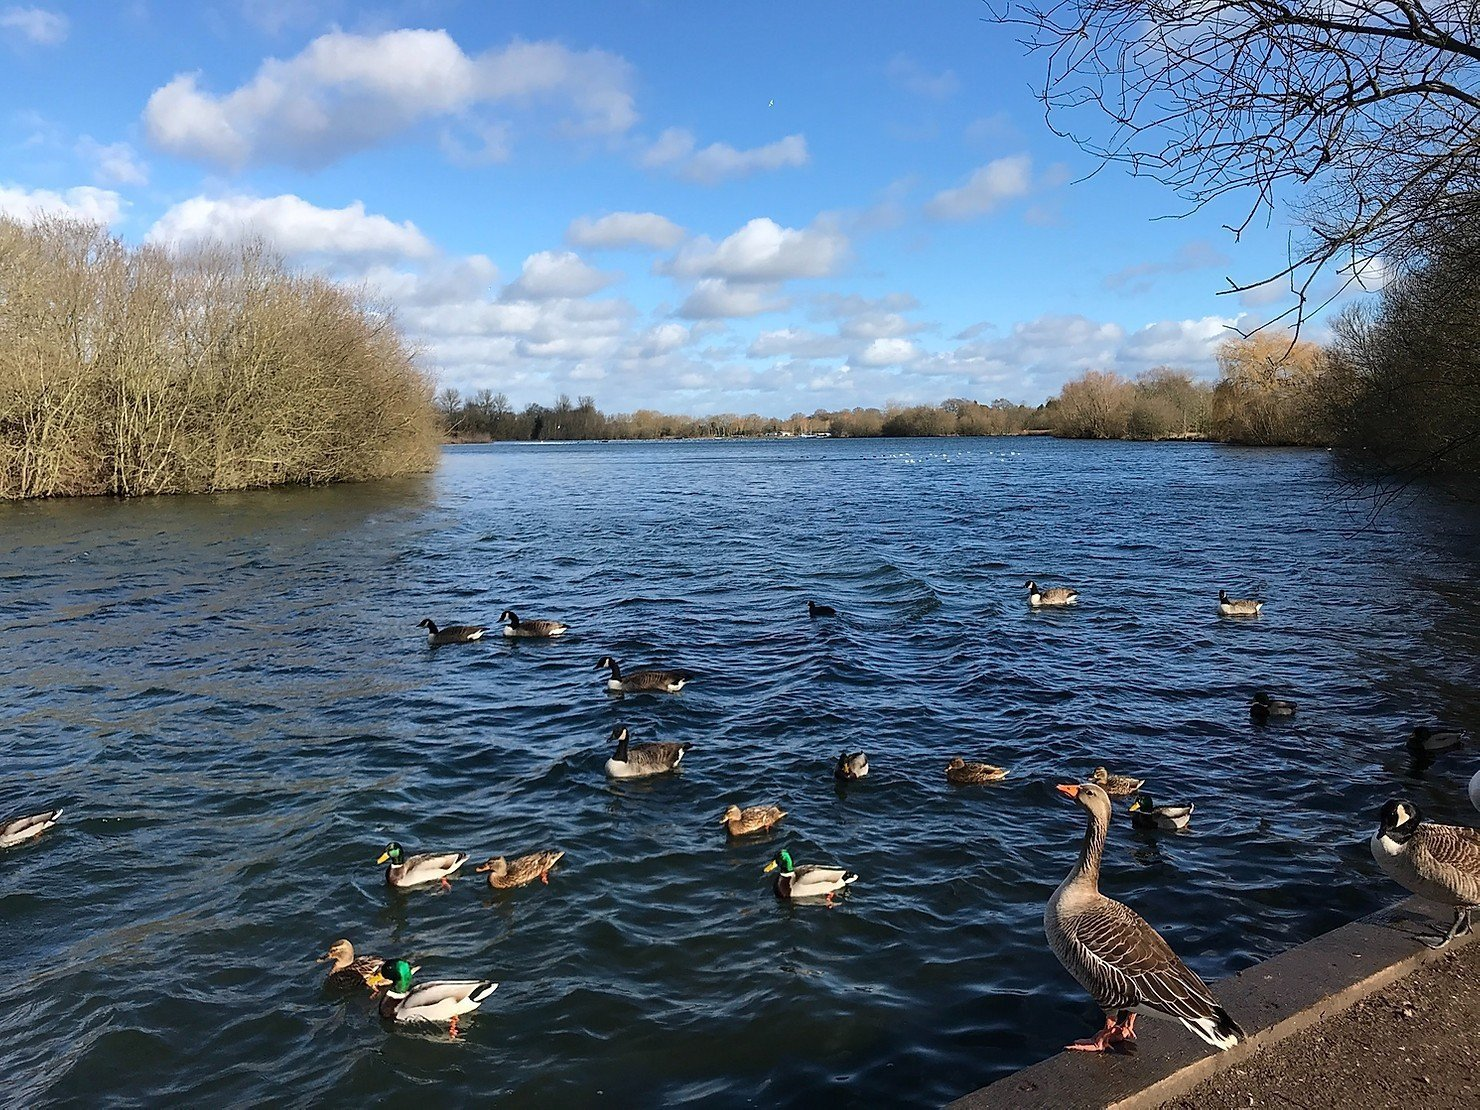 A family trip to Dinton Pastures Country Park, Wokingham